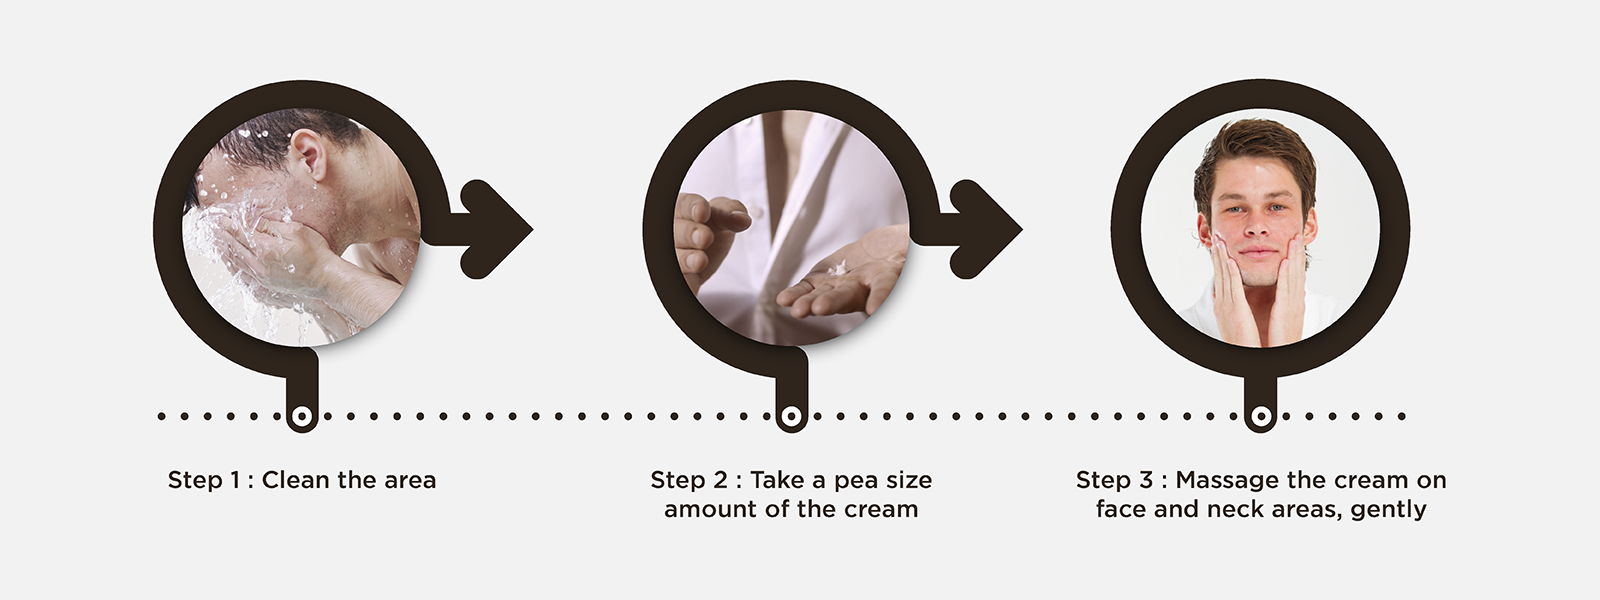 How to use face cream for men